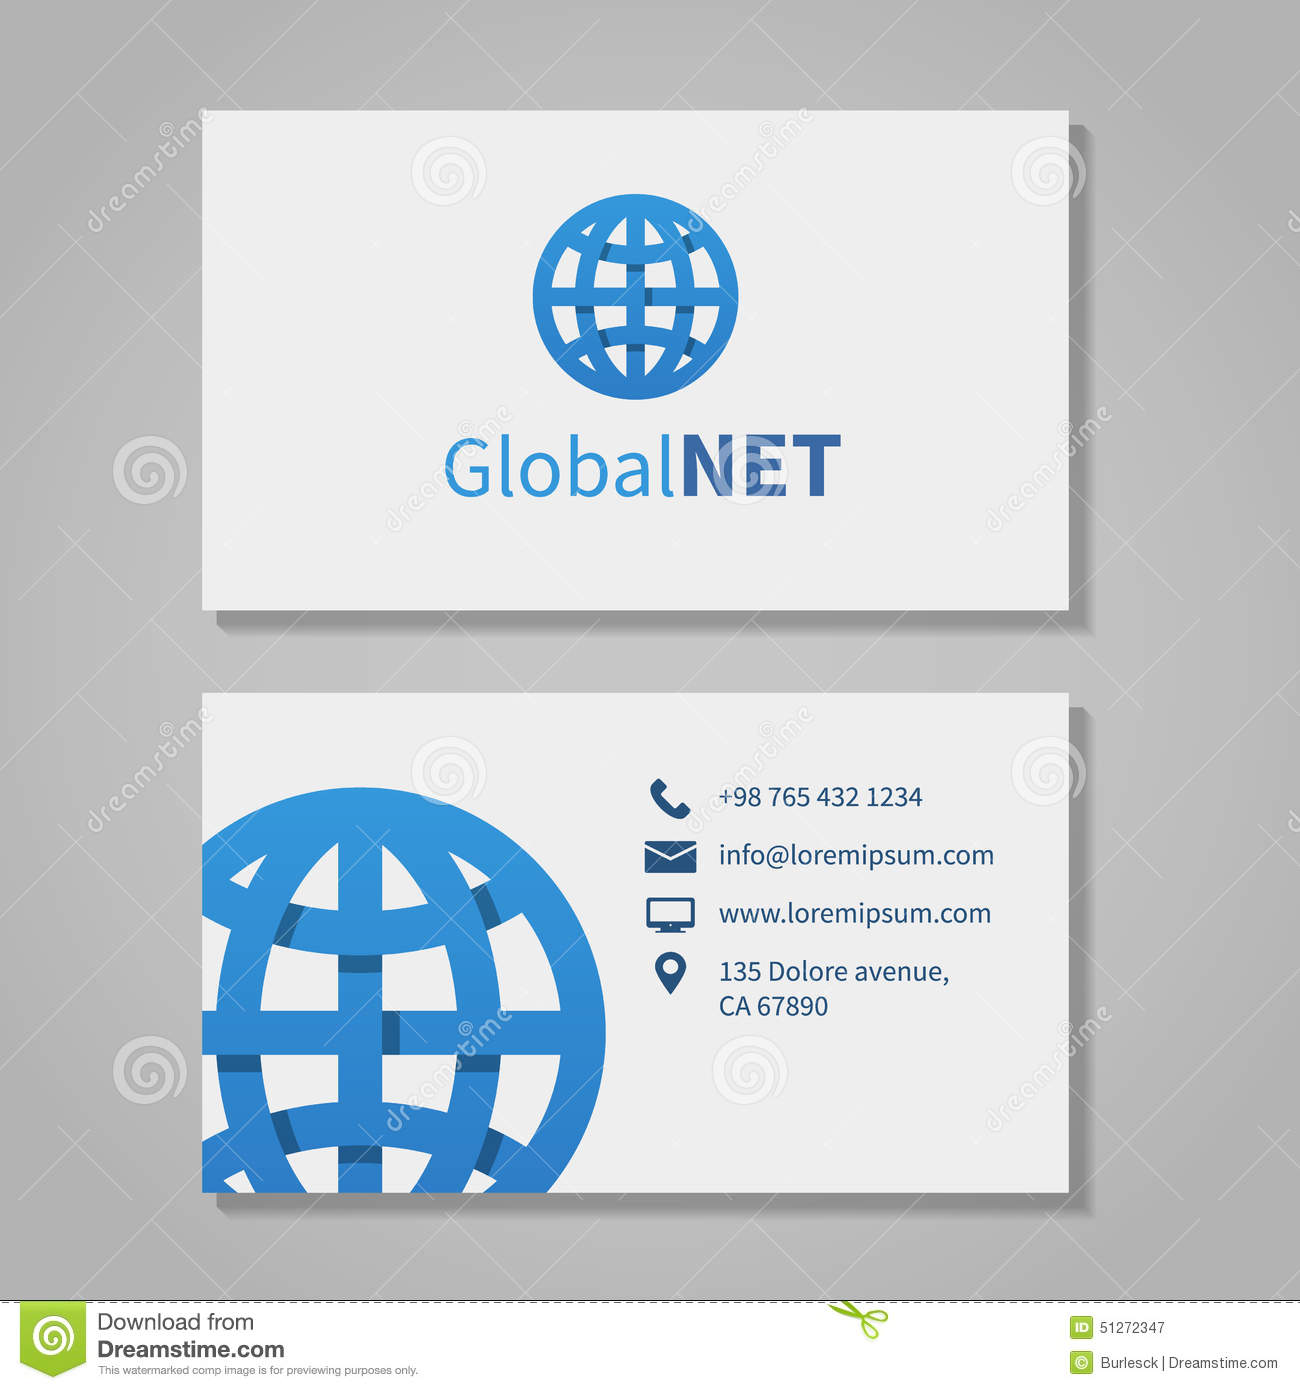 Nice Business Card Email Images - Business Card Ideas - etadam.info